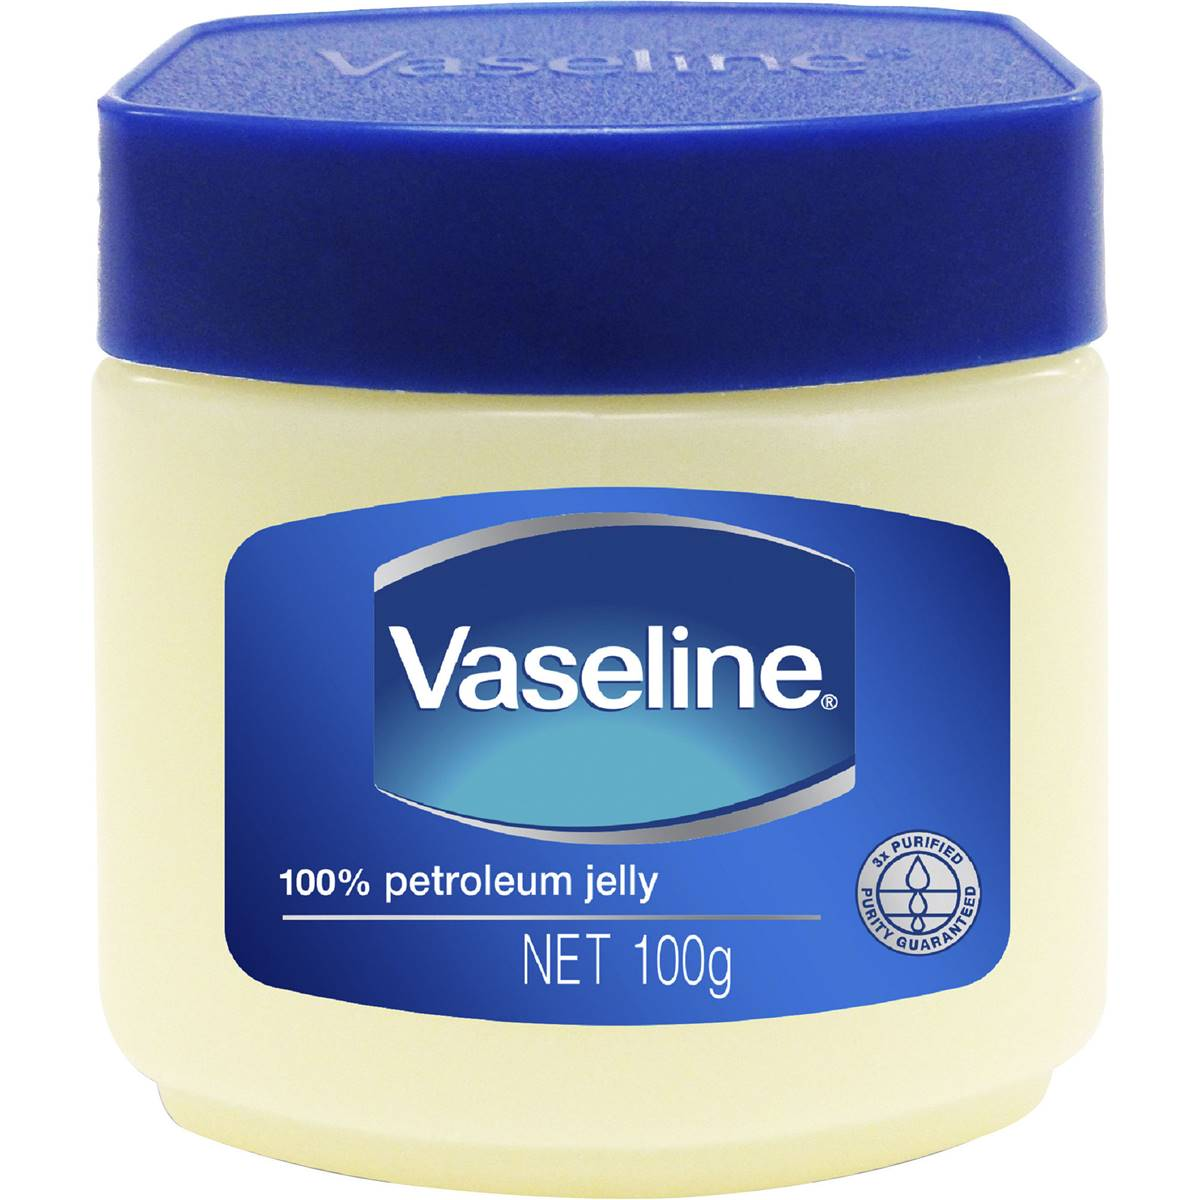 How to soften leather use alcohol and Vaseline